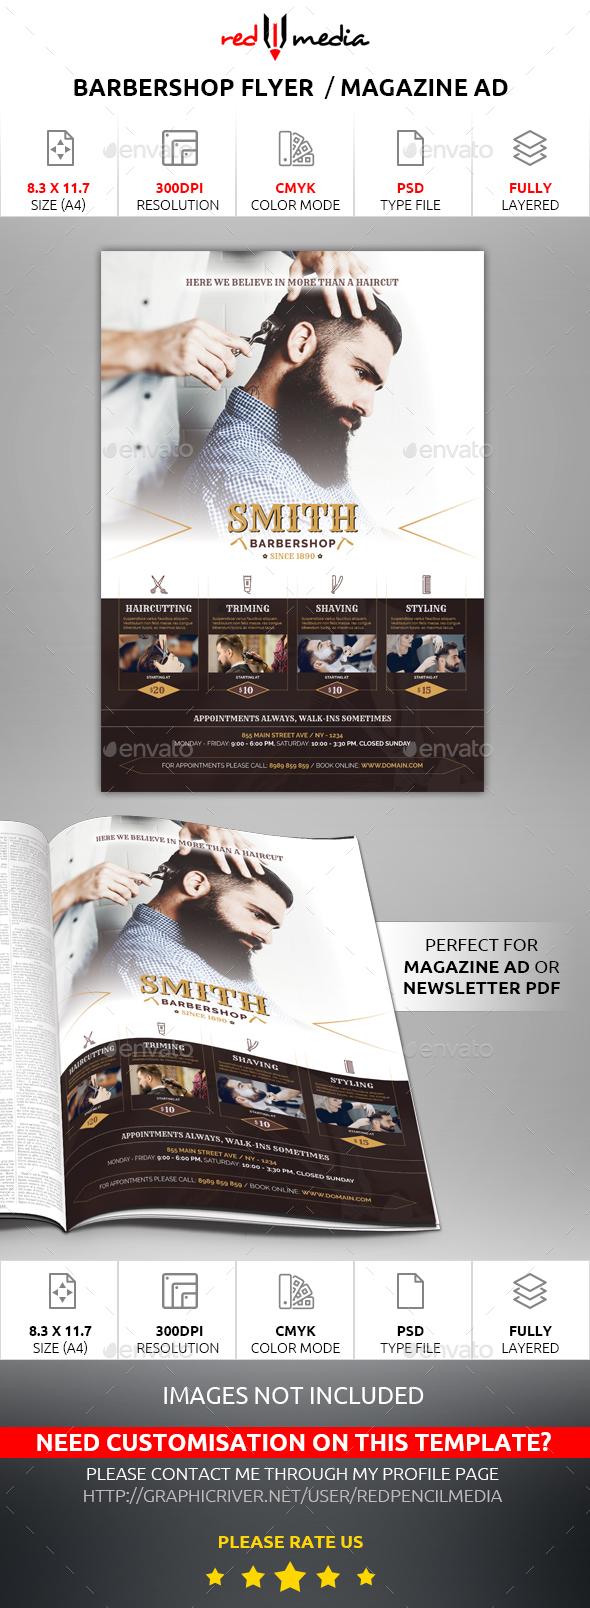 Barbershop Flyer / Magazine AD - Flyers Print Templates